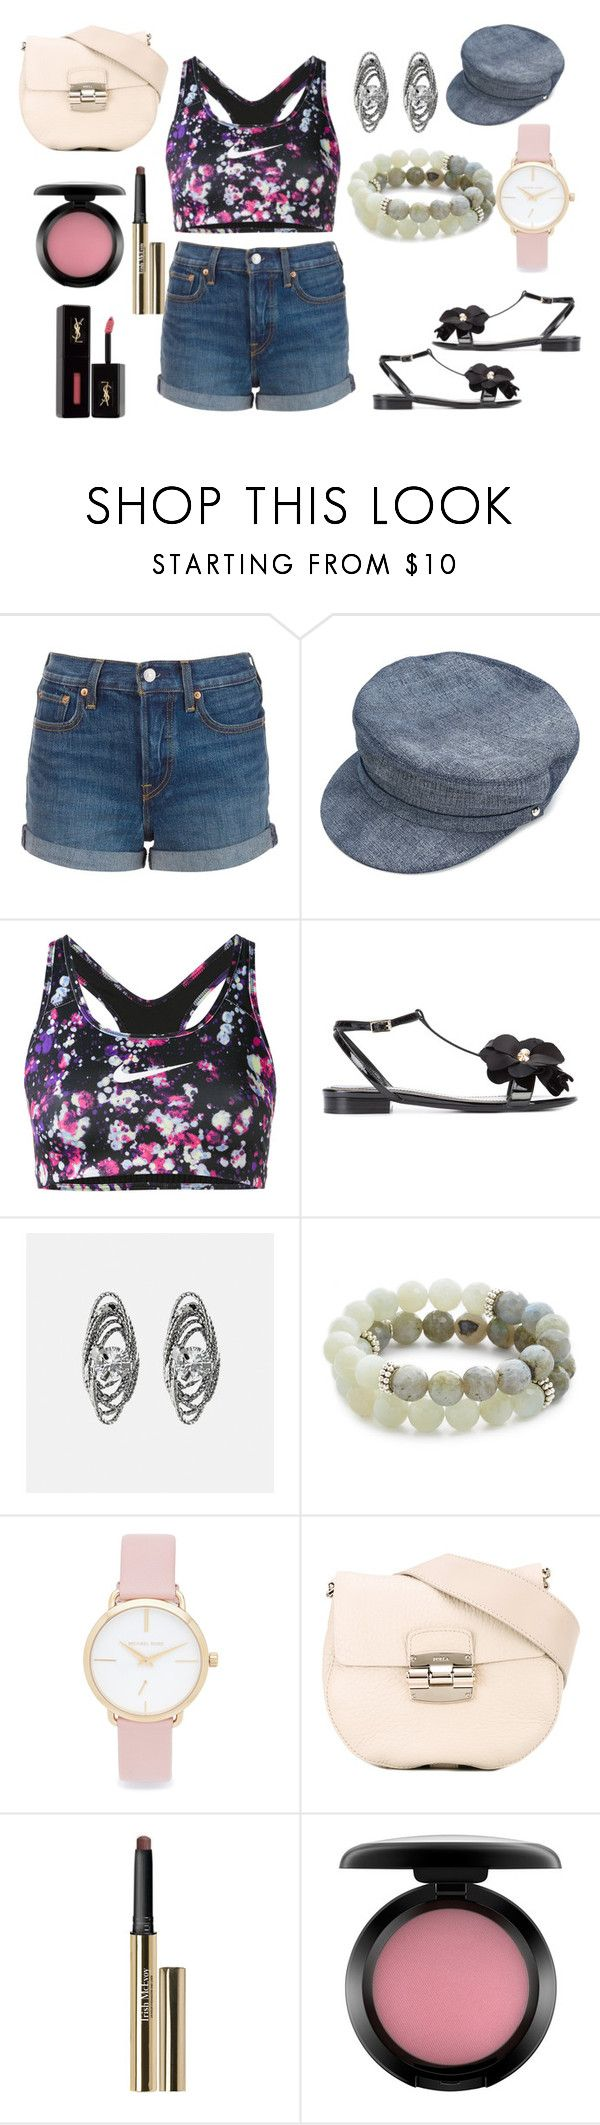 """""""sporty Look"""" by hillarymaguire ❤ liked on Polyvore featuring Levi's, Manokhi, NIKE, Lanvin, Avenue, Lacey Ryan, Michael Kors, Furla, Trish McEvoy and MAC Cosmetics"""